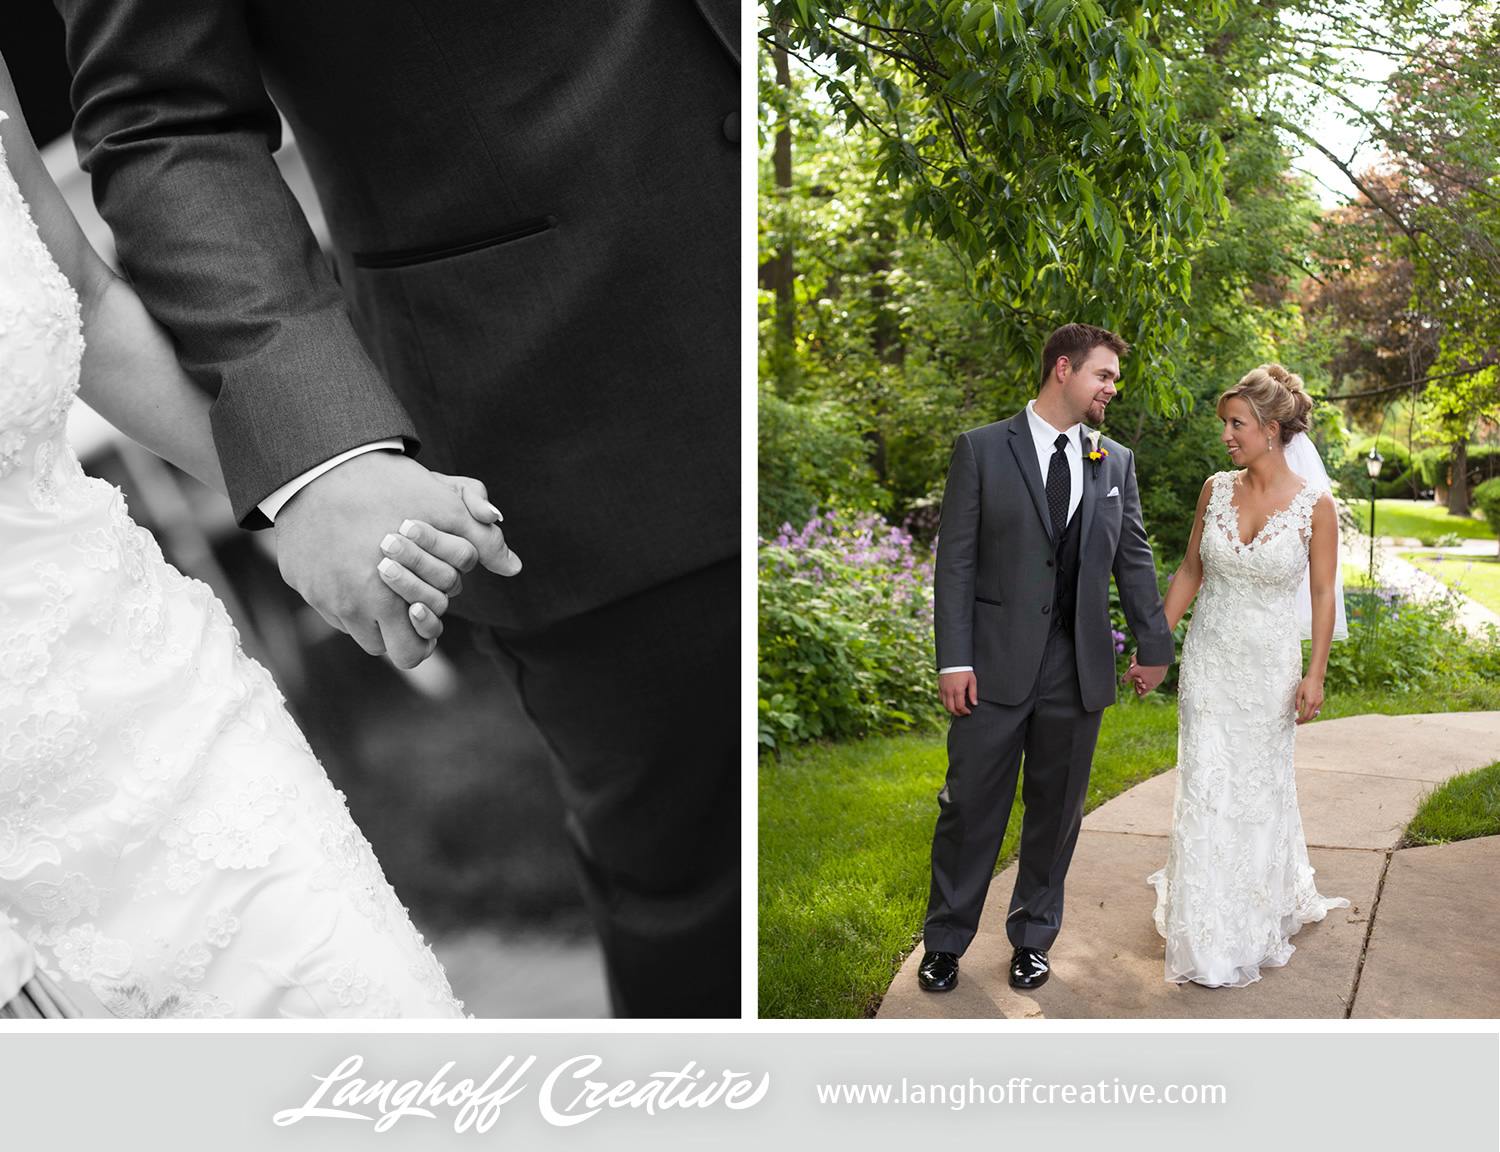 LanghoffCreative-Wedding-SneakPeek2-DrewSami-photo.jpg